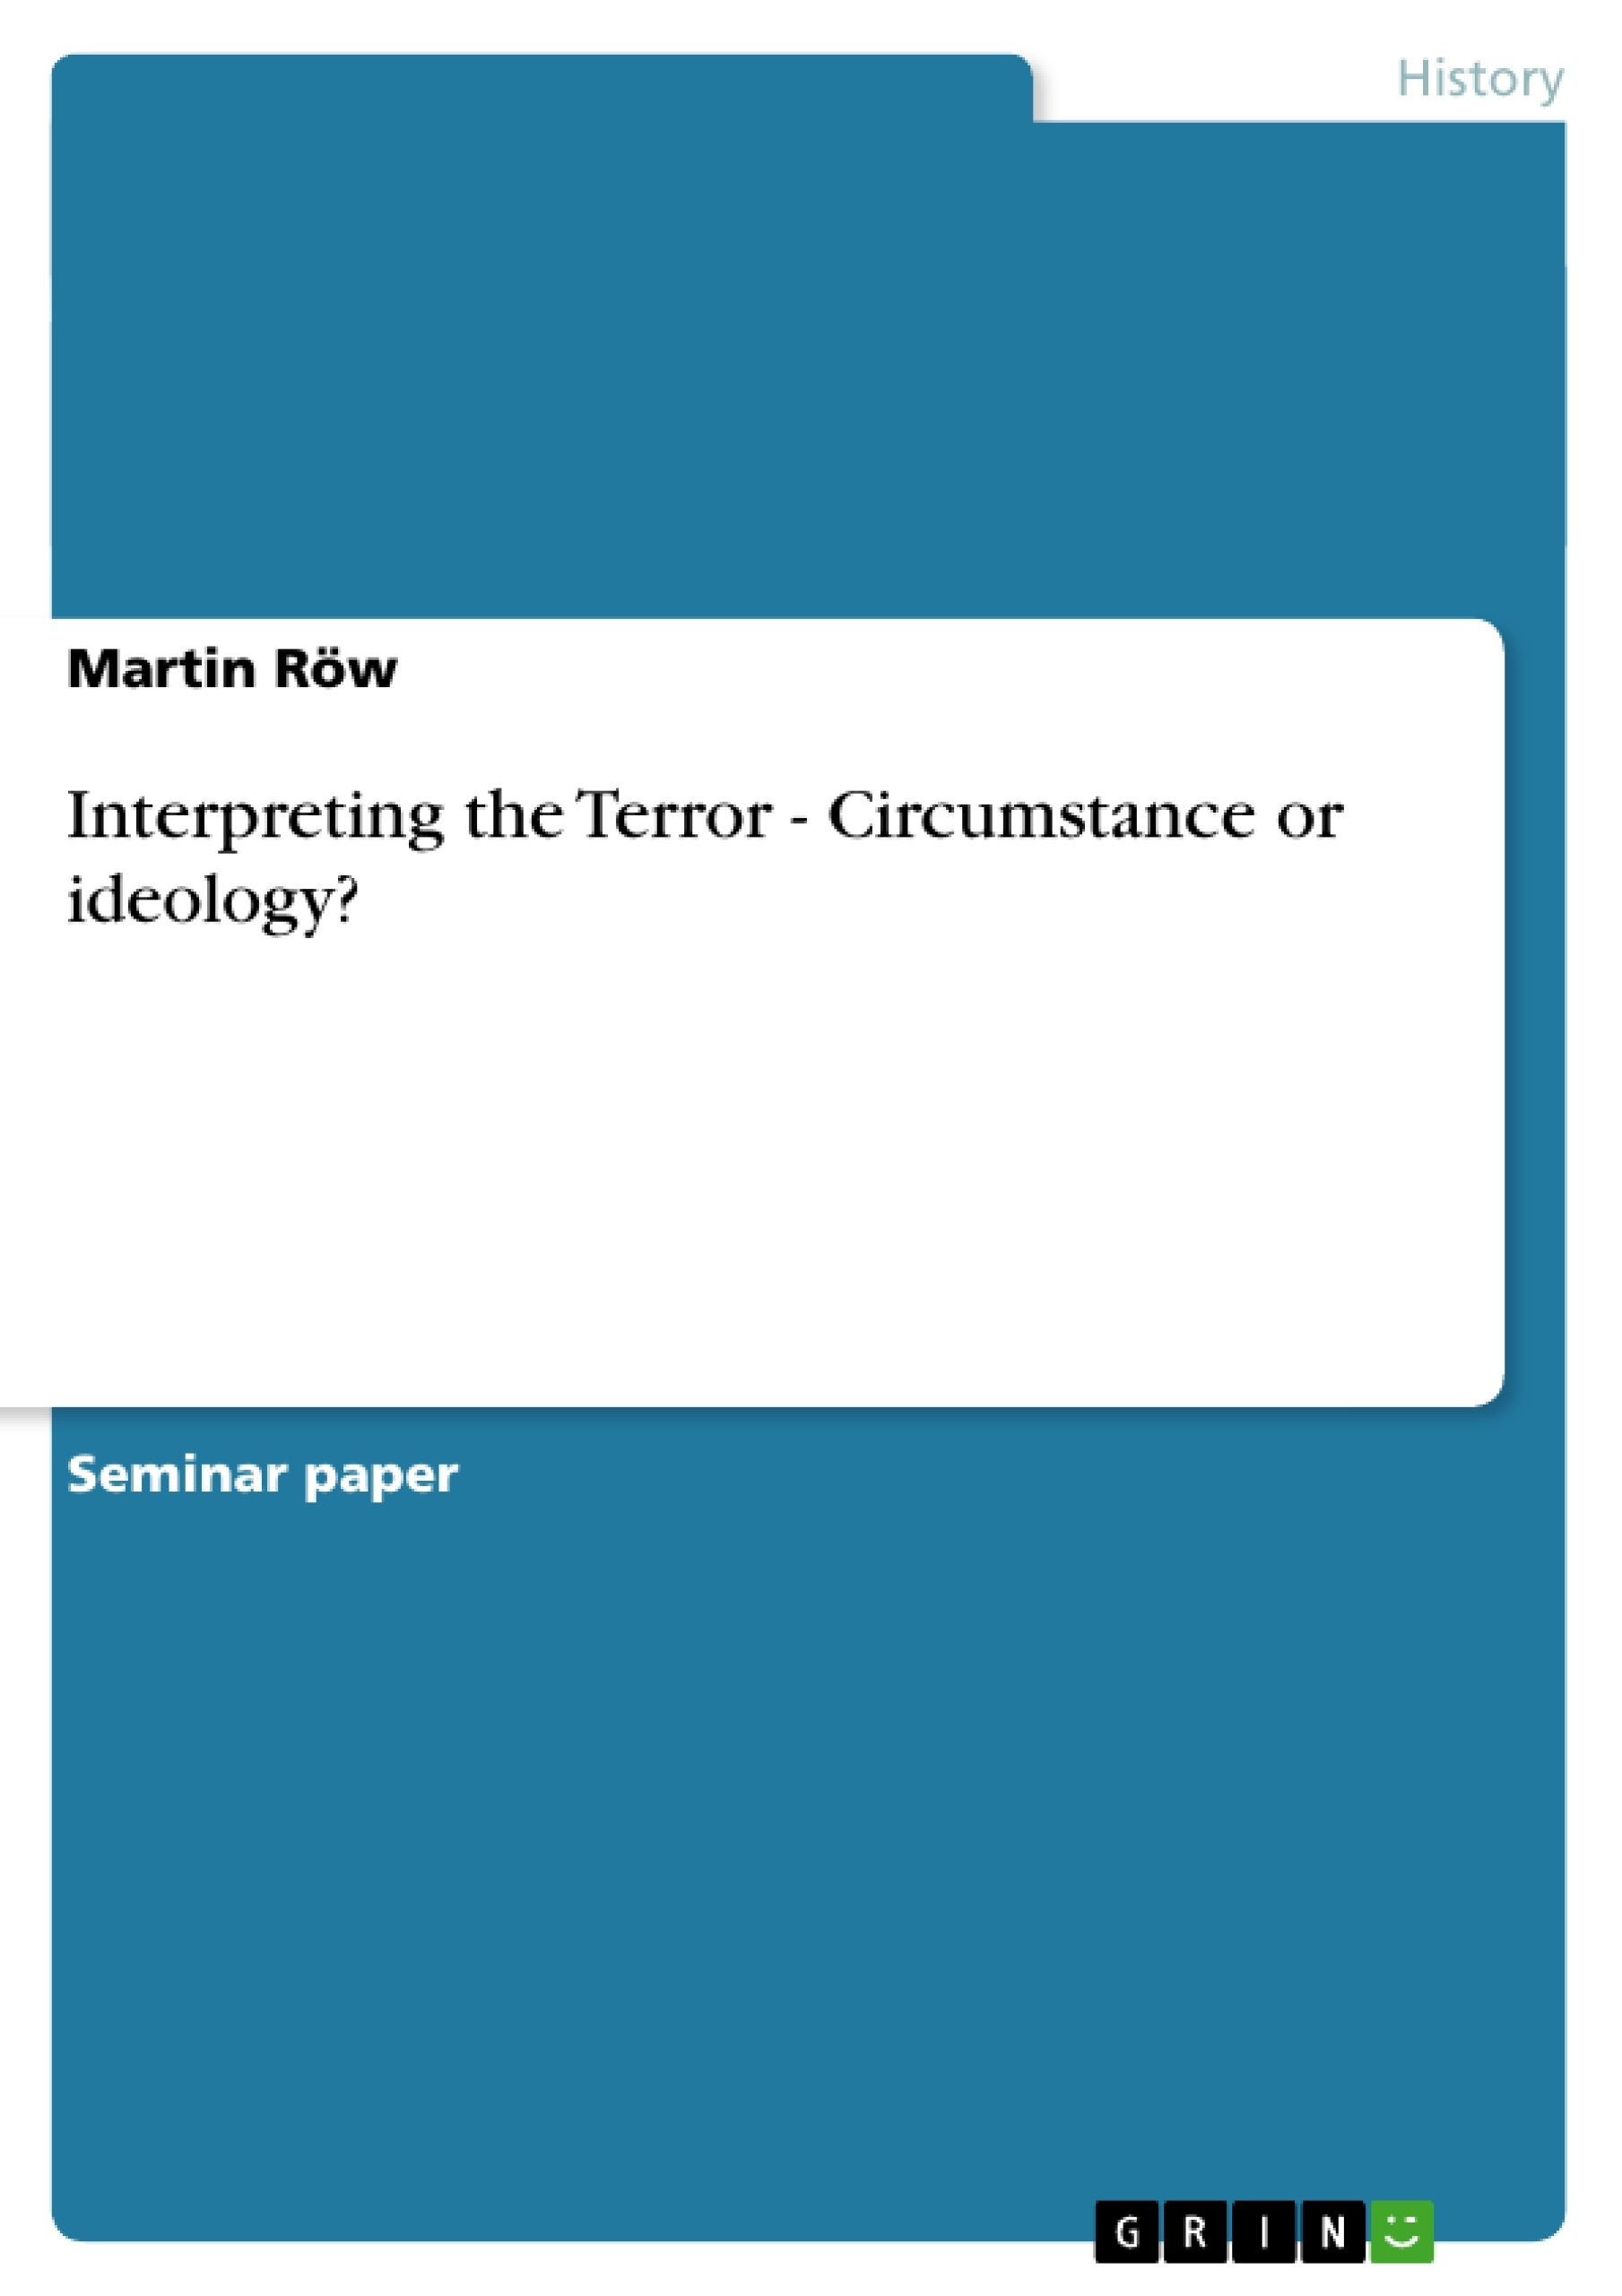 Title: Interpreting the Terror - Circumstance or ideology?